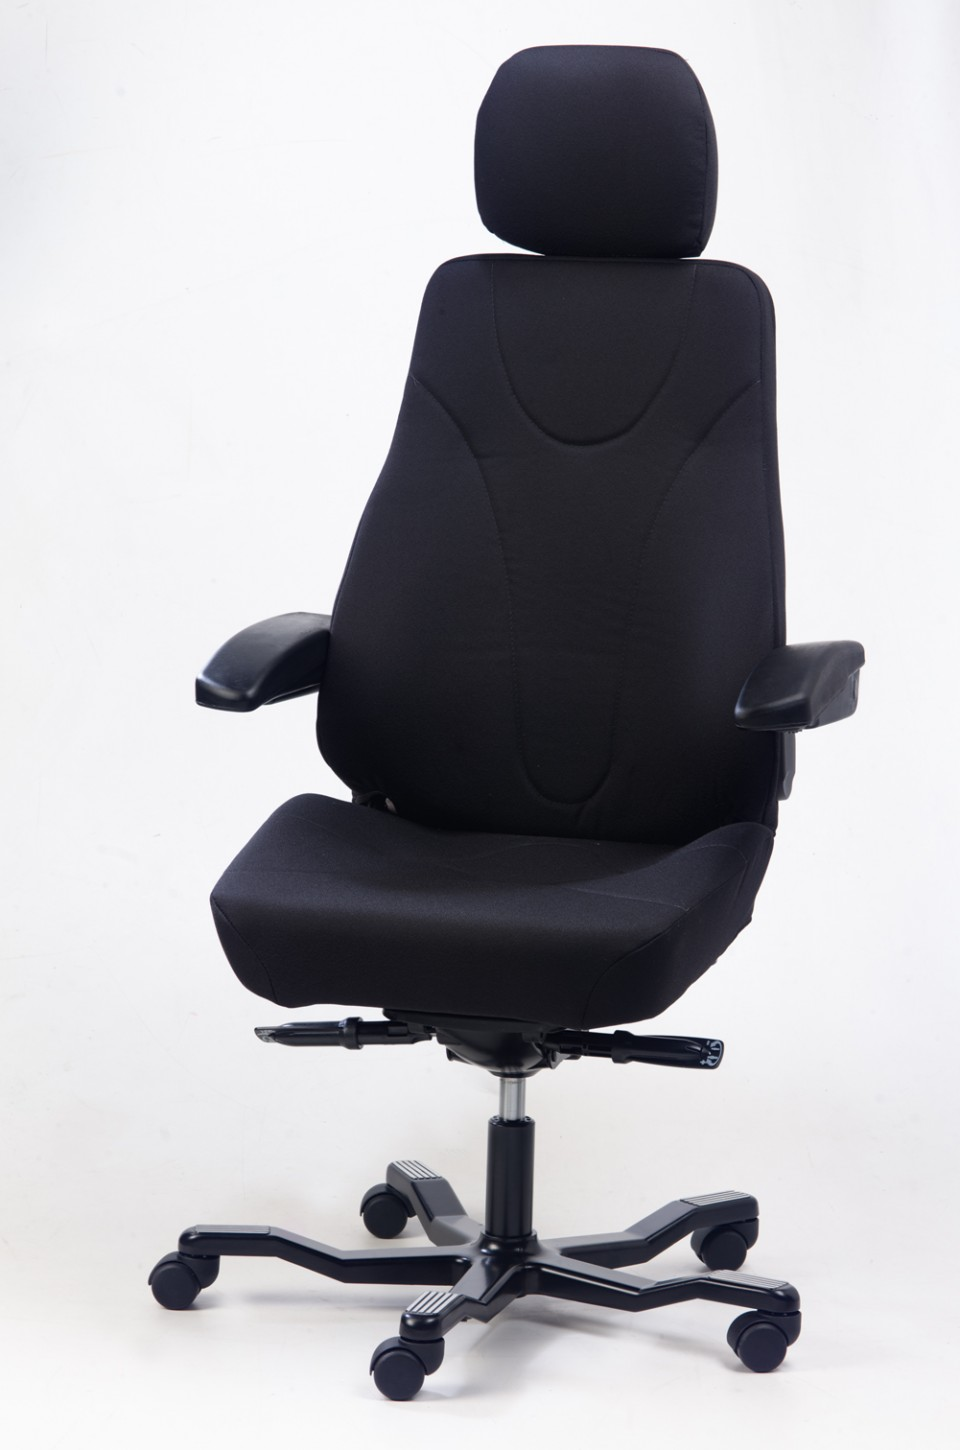 fauteuil de bureau ergonomique concerto achat si ges ergonomiques 999 00. Black Bedroom Furniture Sets. Home Design Ideas